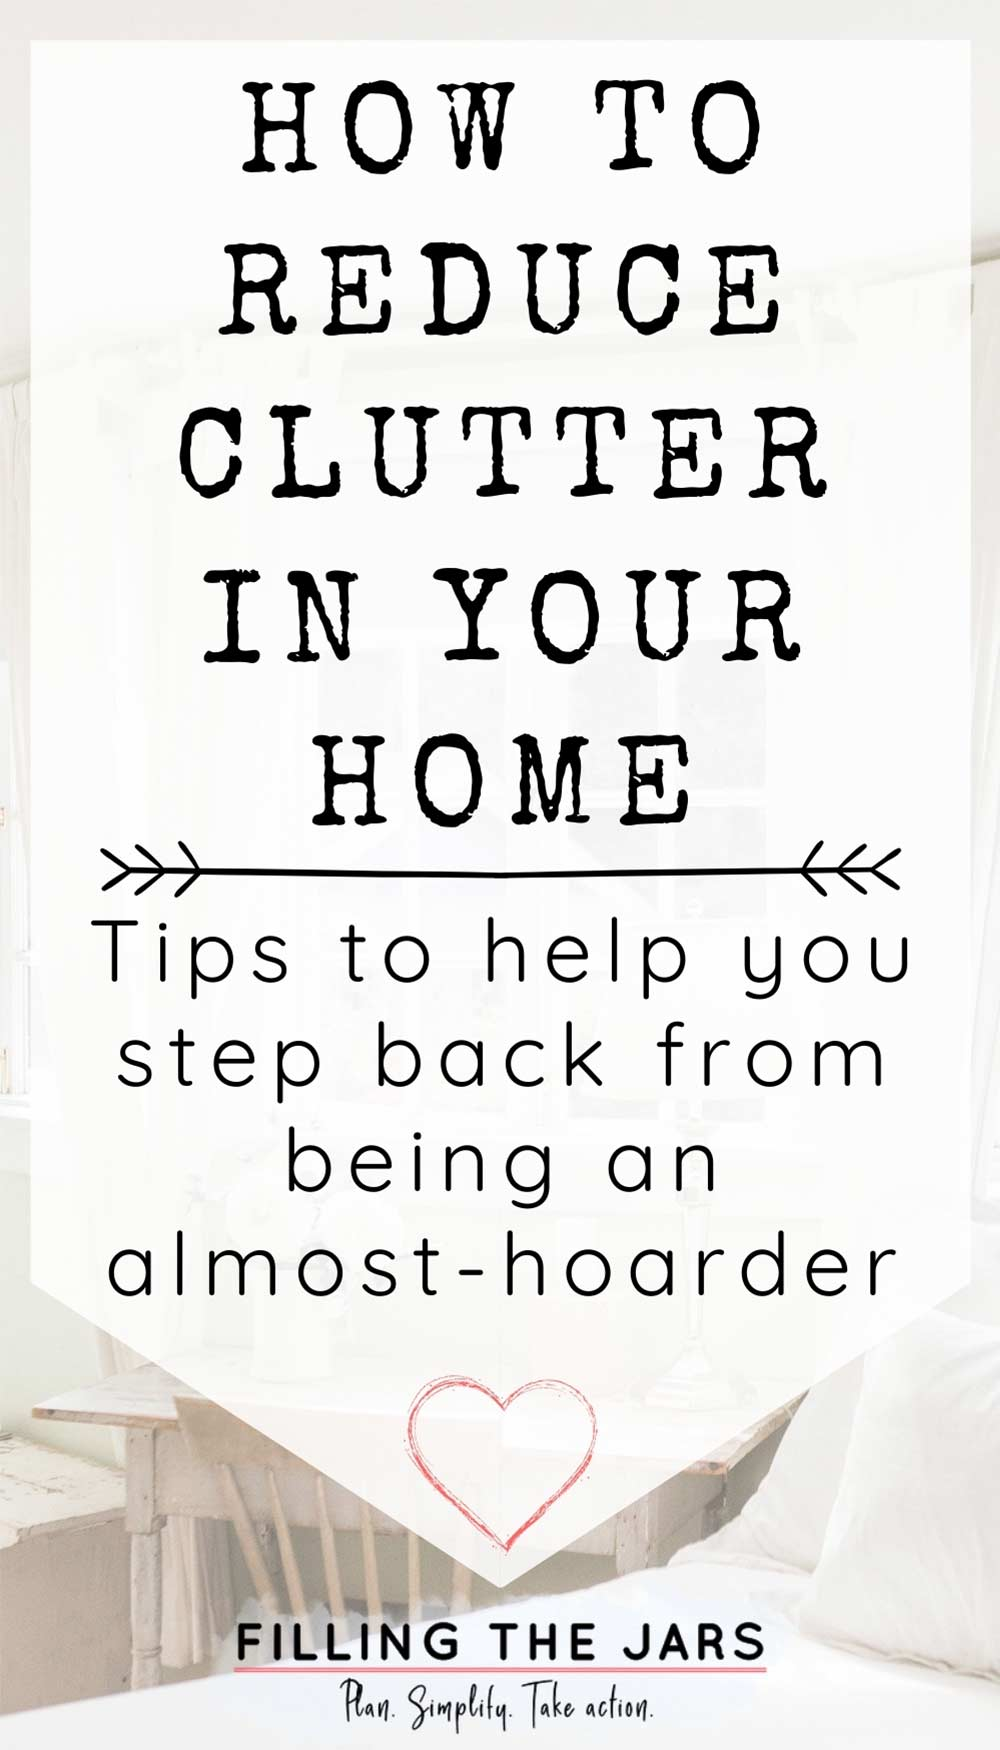 Text how to reduce clutter in your home on white background over image of bright and airy bedroom with white linens and rustic desk.